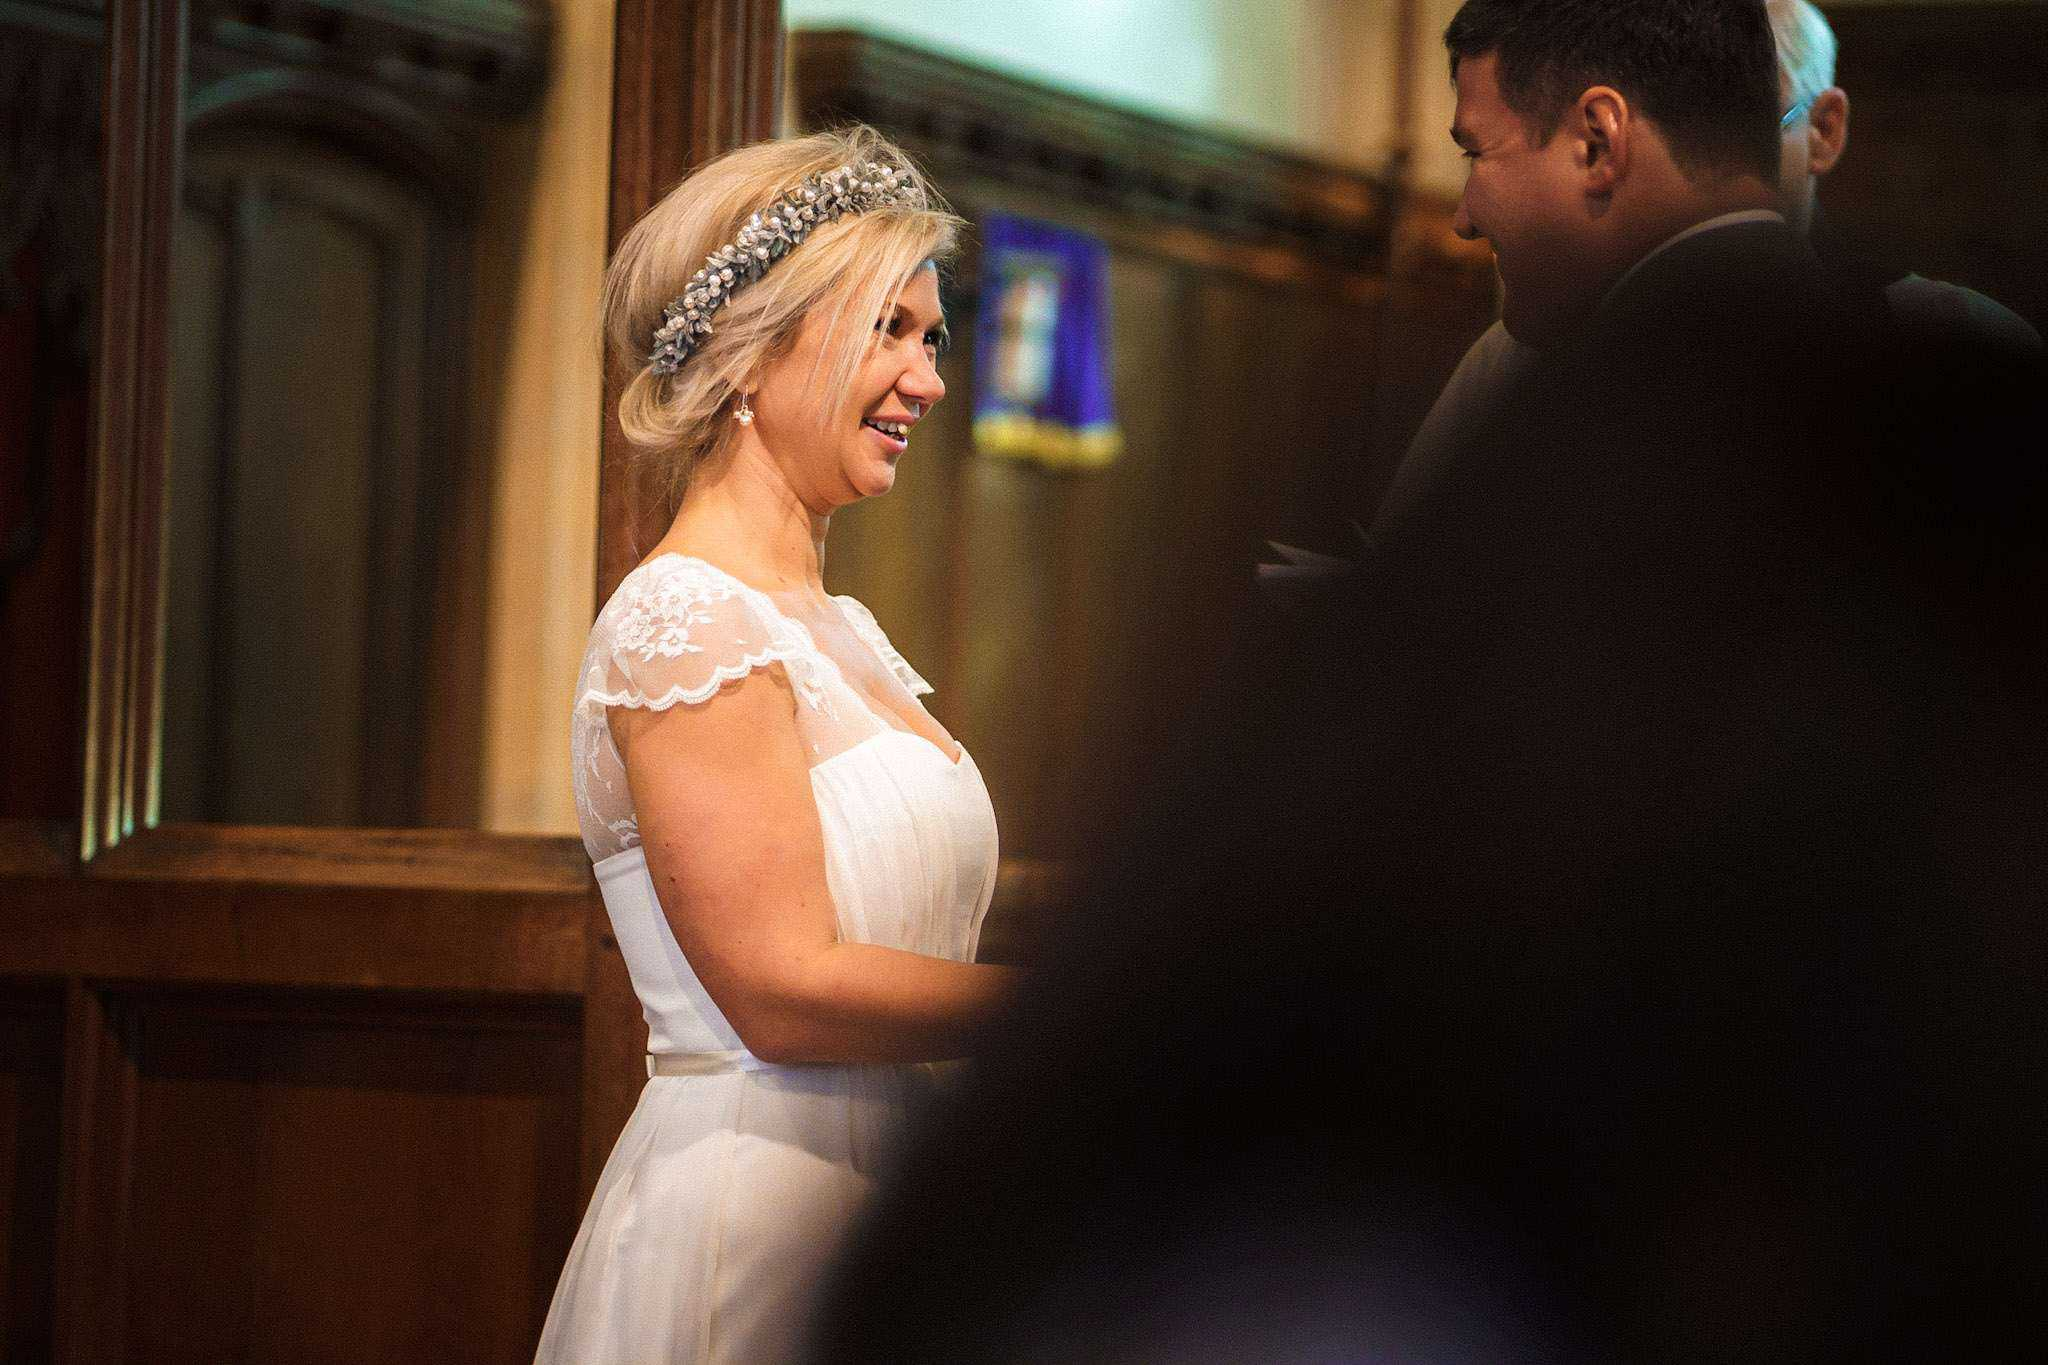 The bride during her vows